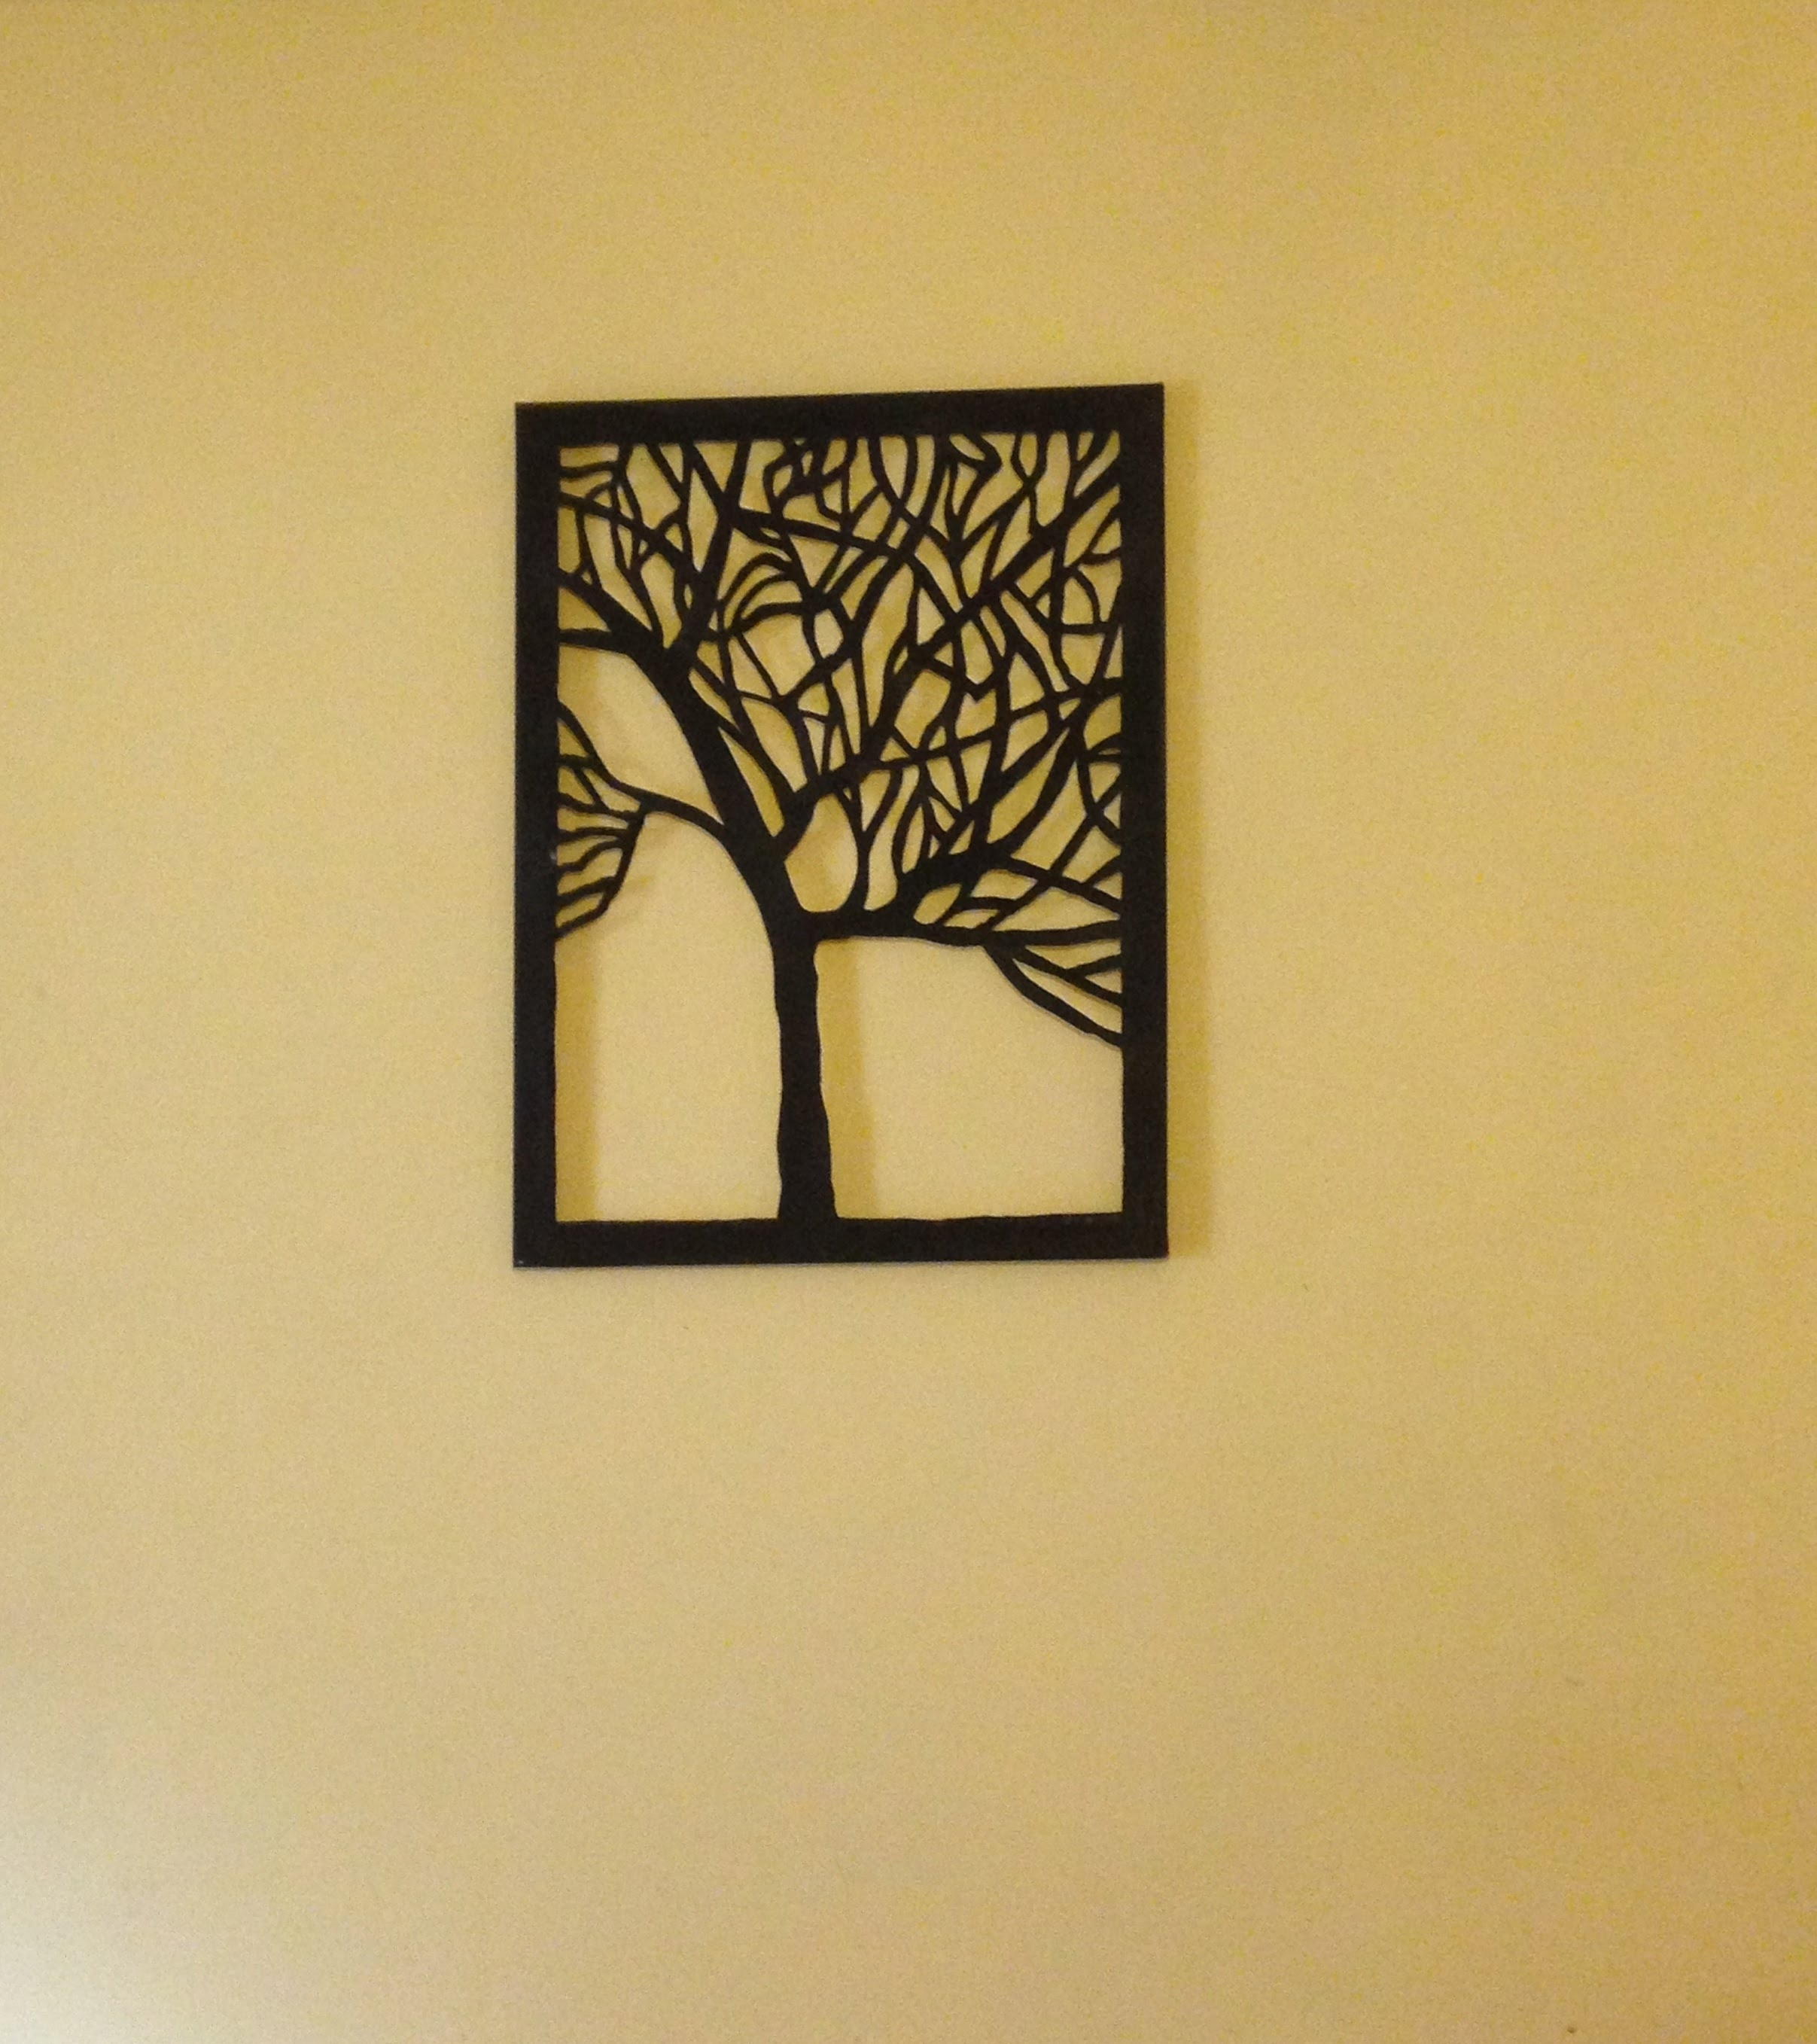 Amazing Diy Canvas Tree Cut Out (wall Art Home Decor Idea) – Youtube For Most Recently Released Homemade Canvas Wall Art (View 4 of 15)